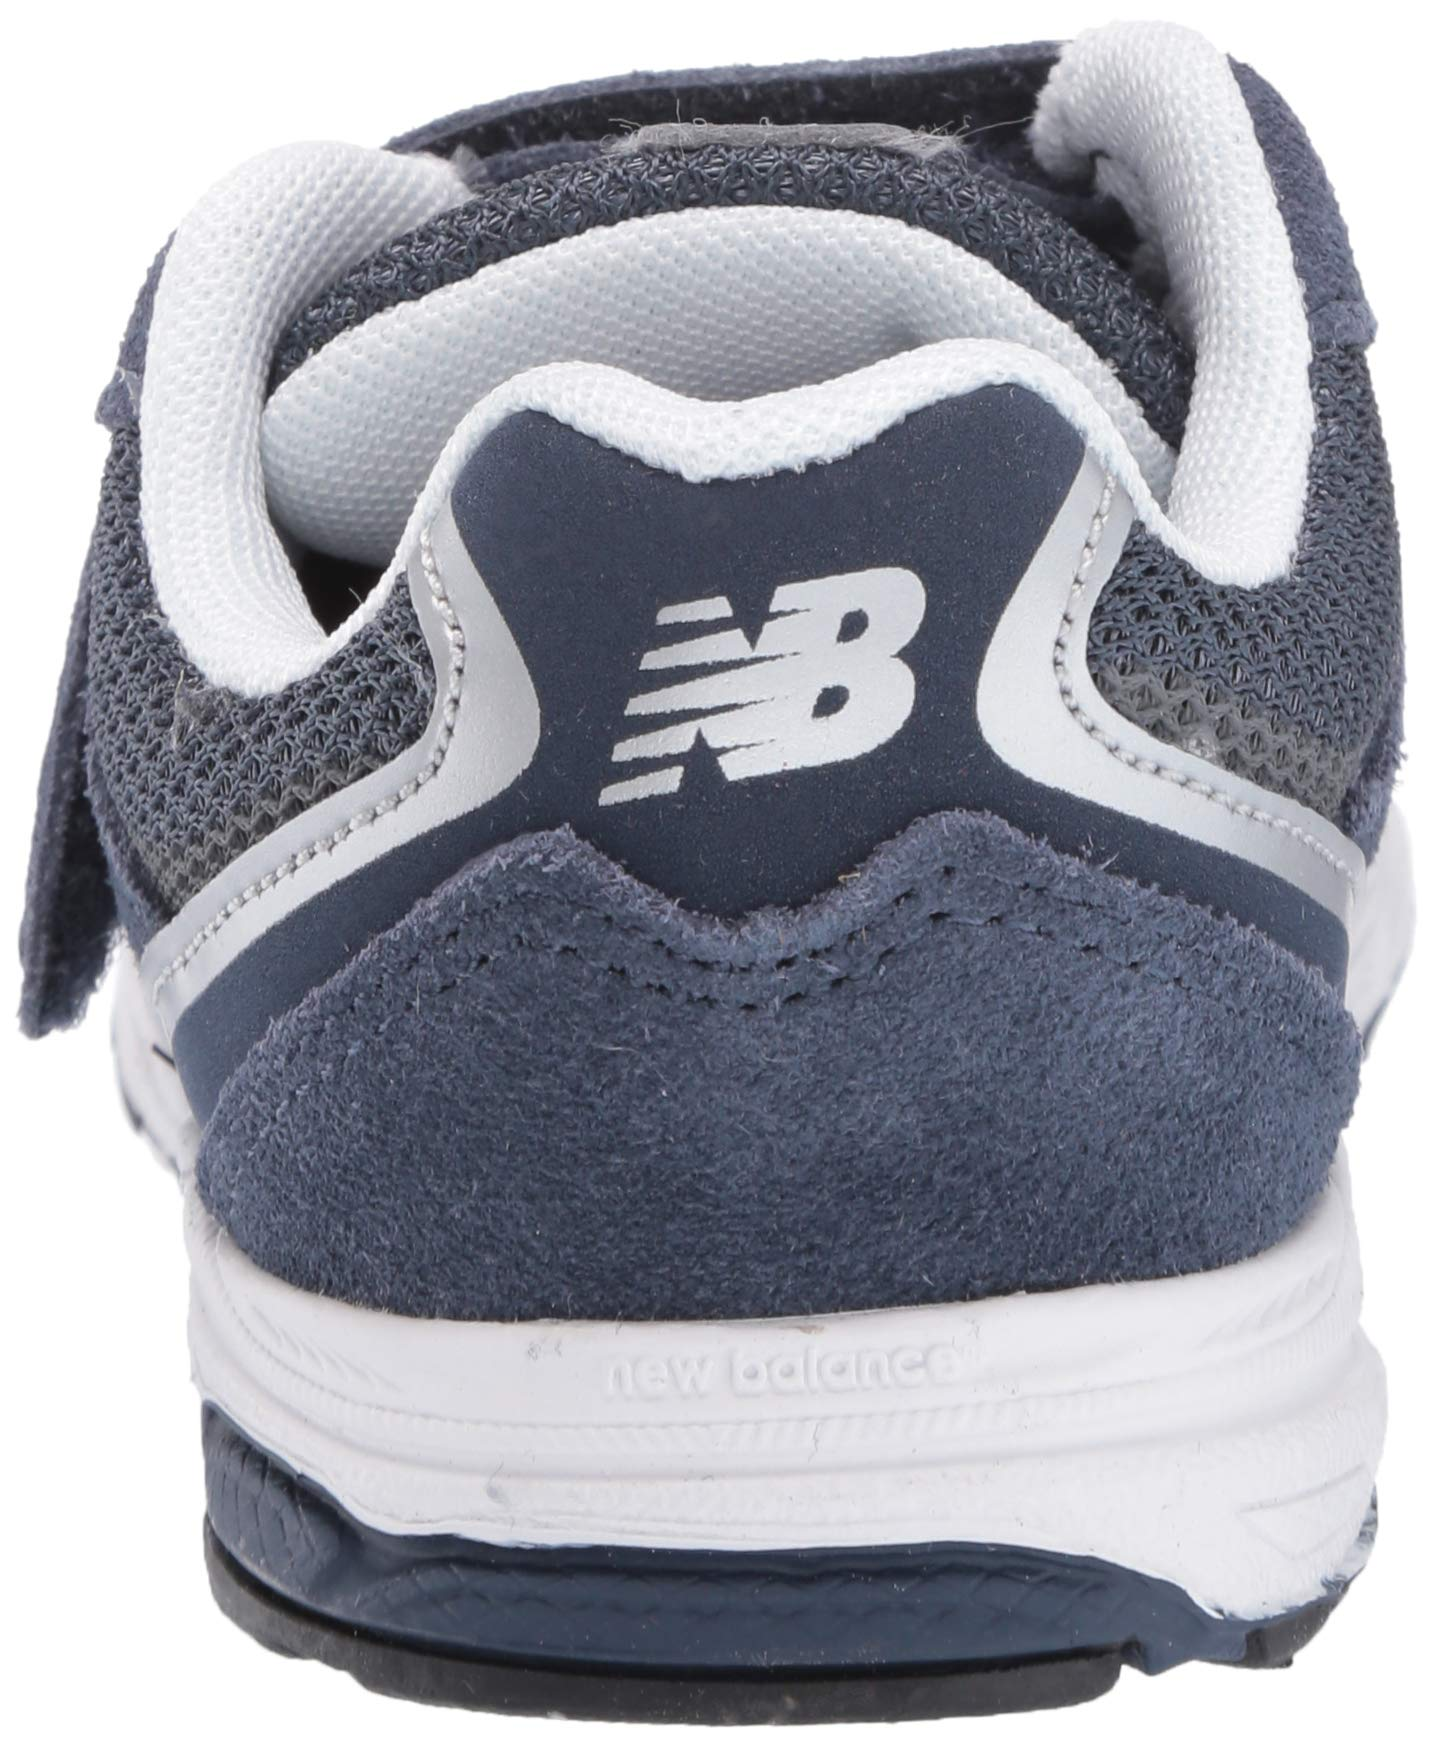 New Balance Boys' 888v2 Hook and Loop Running Shoe, Navy/Grey, 2 W US Infant by New Balance (Image #2)